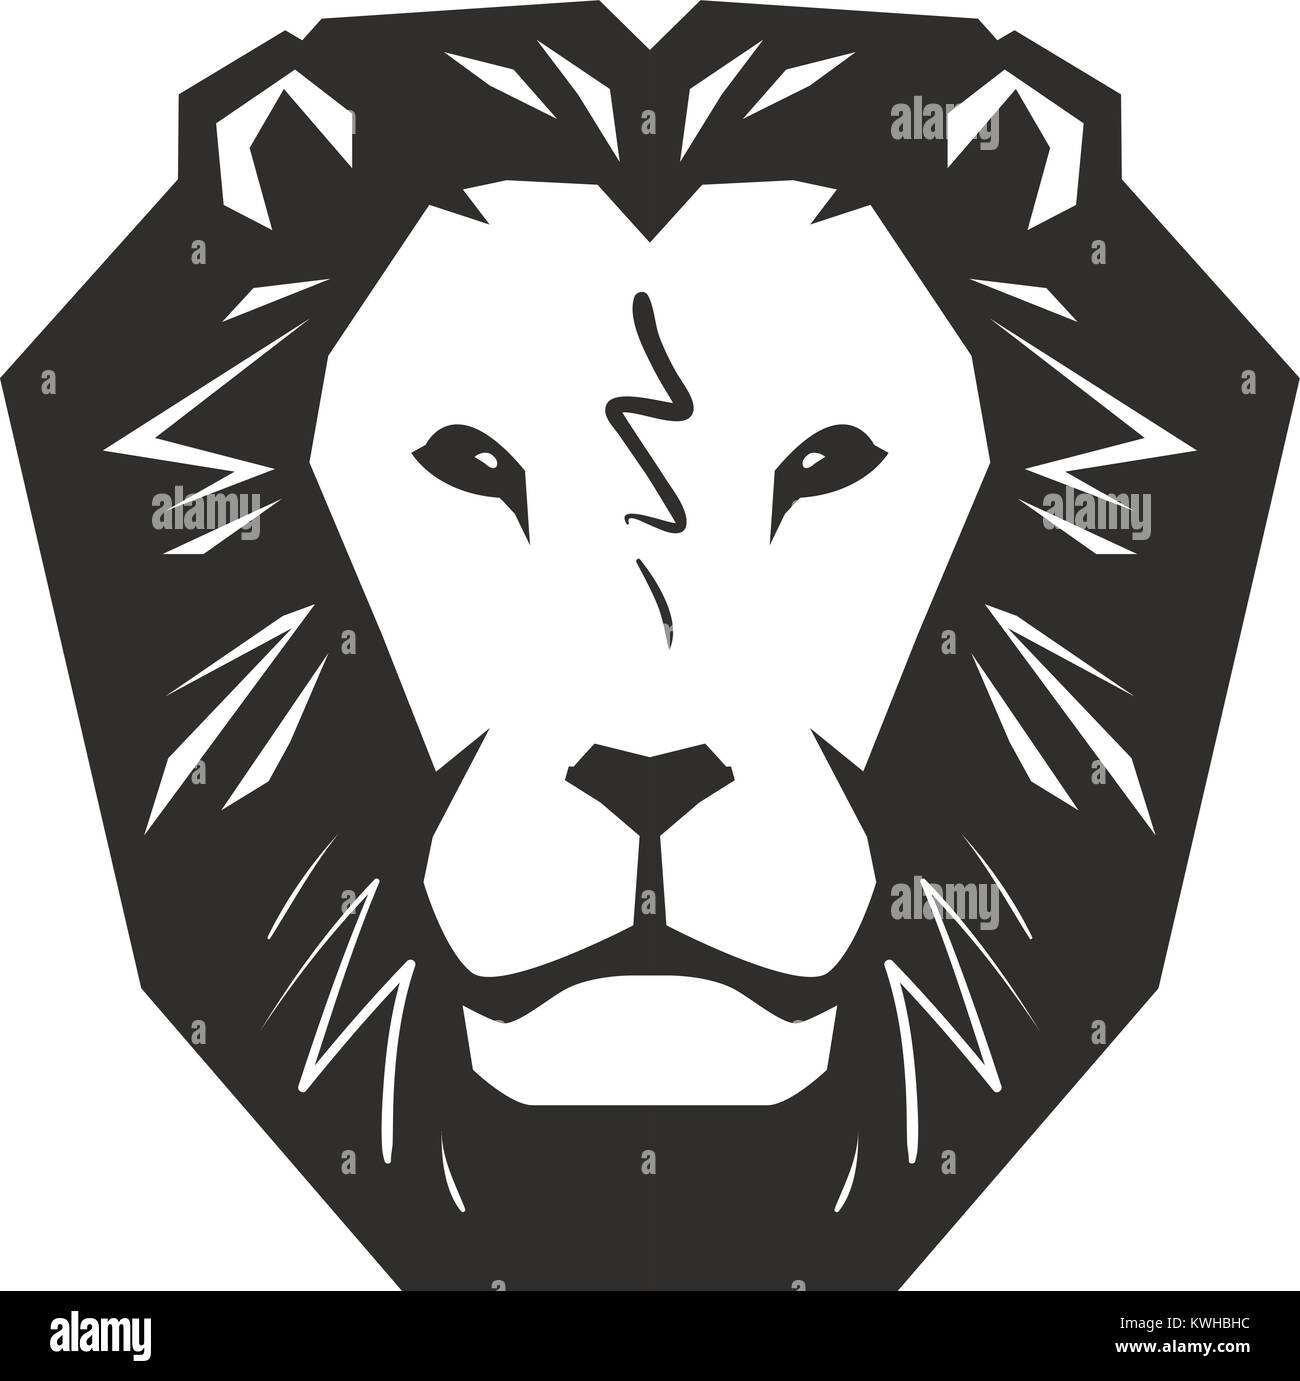 Lion logo stock photos lion logo stock images alamy lion logo animal wildlife symbol or icon vector illustration stock image biocorpaavc Gallery